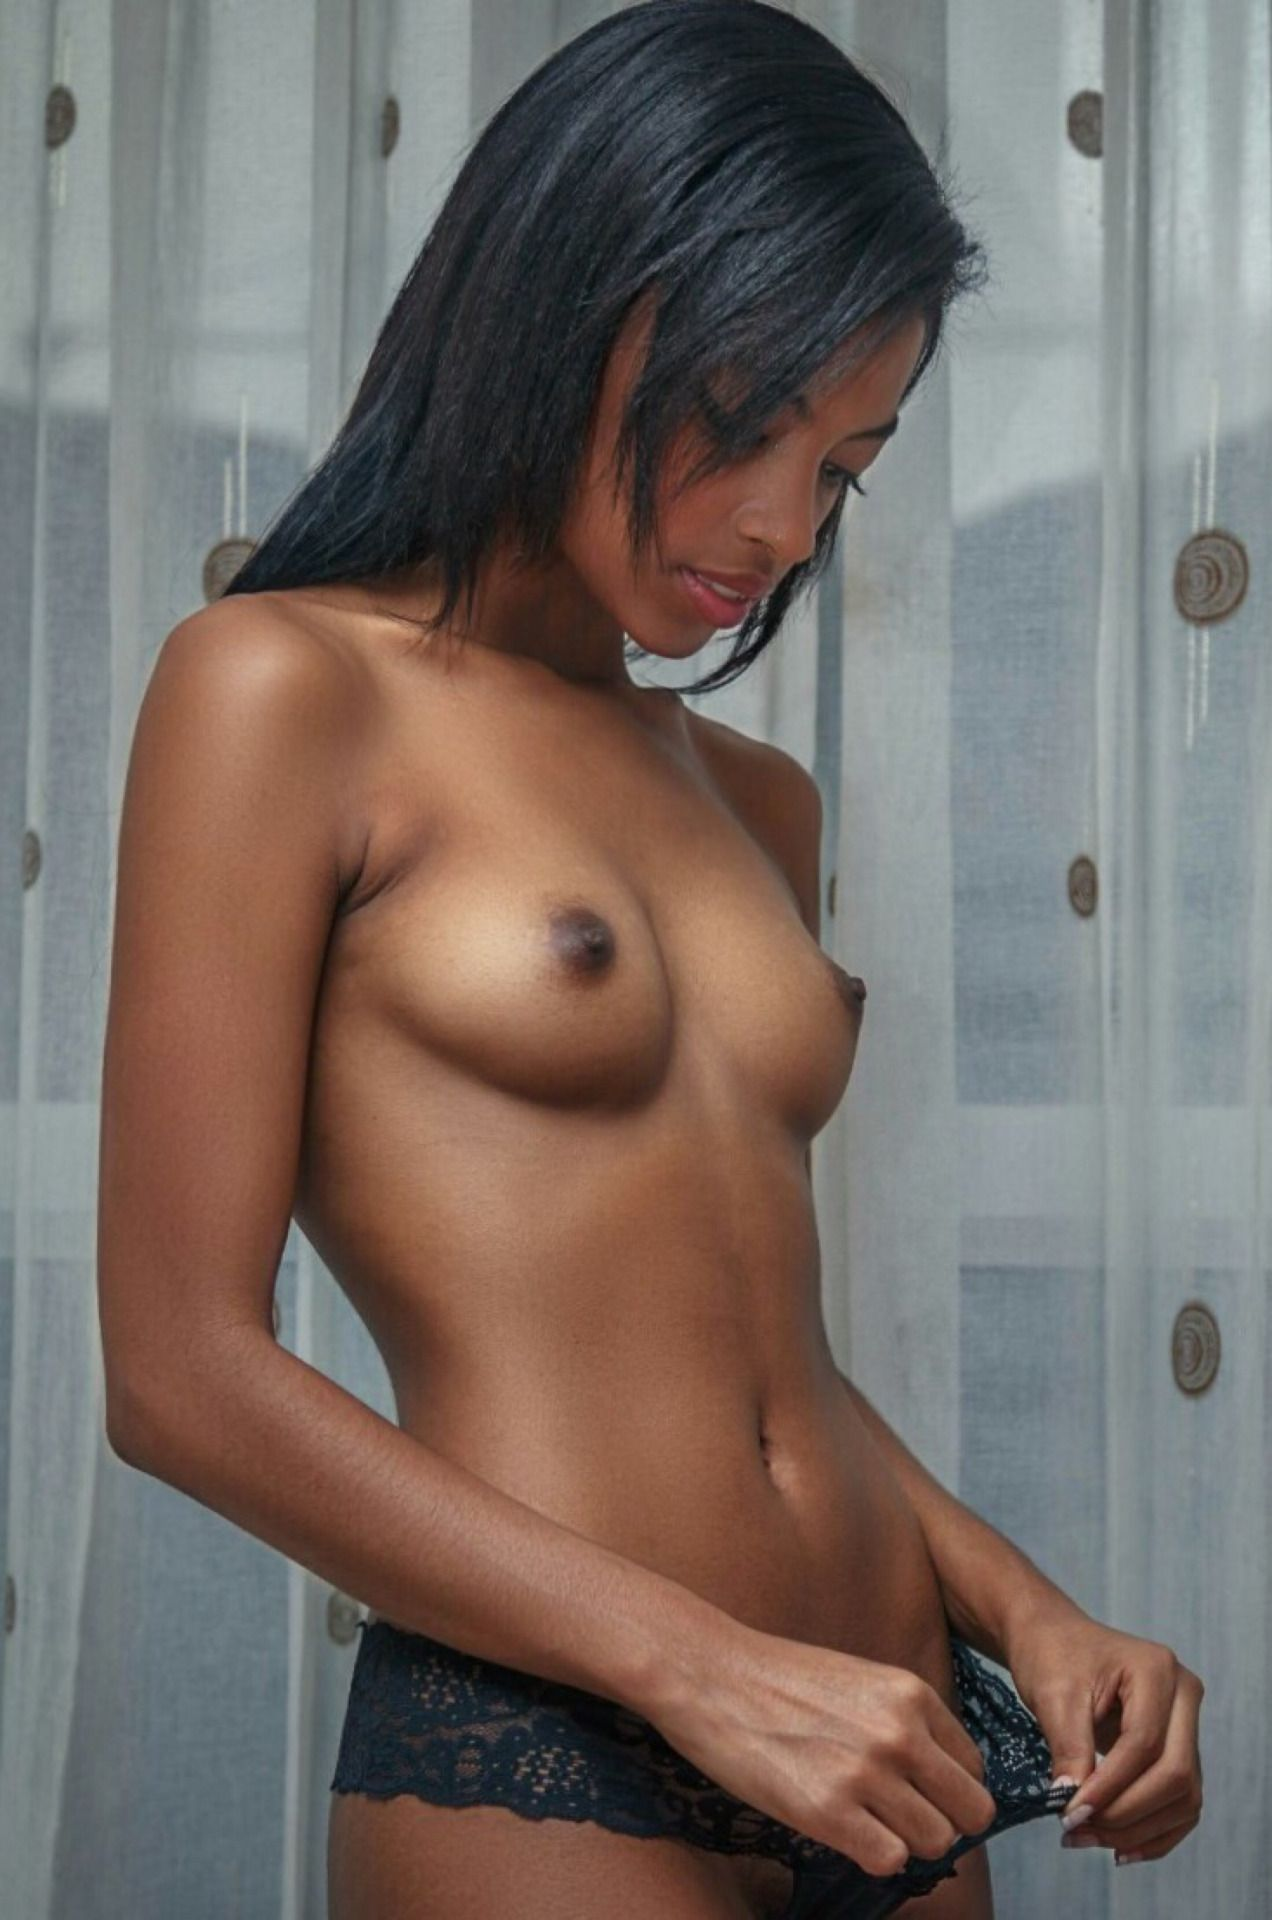 black-girl-with-tiny-tits-kardashian-nude-photo